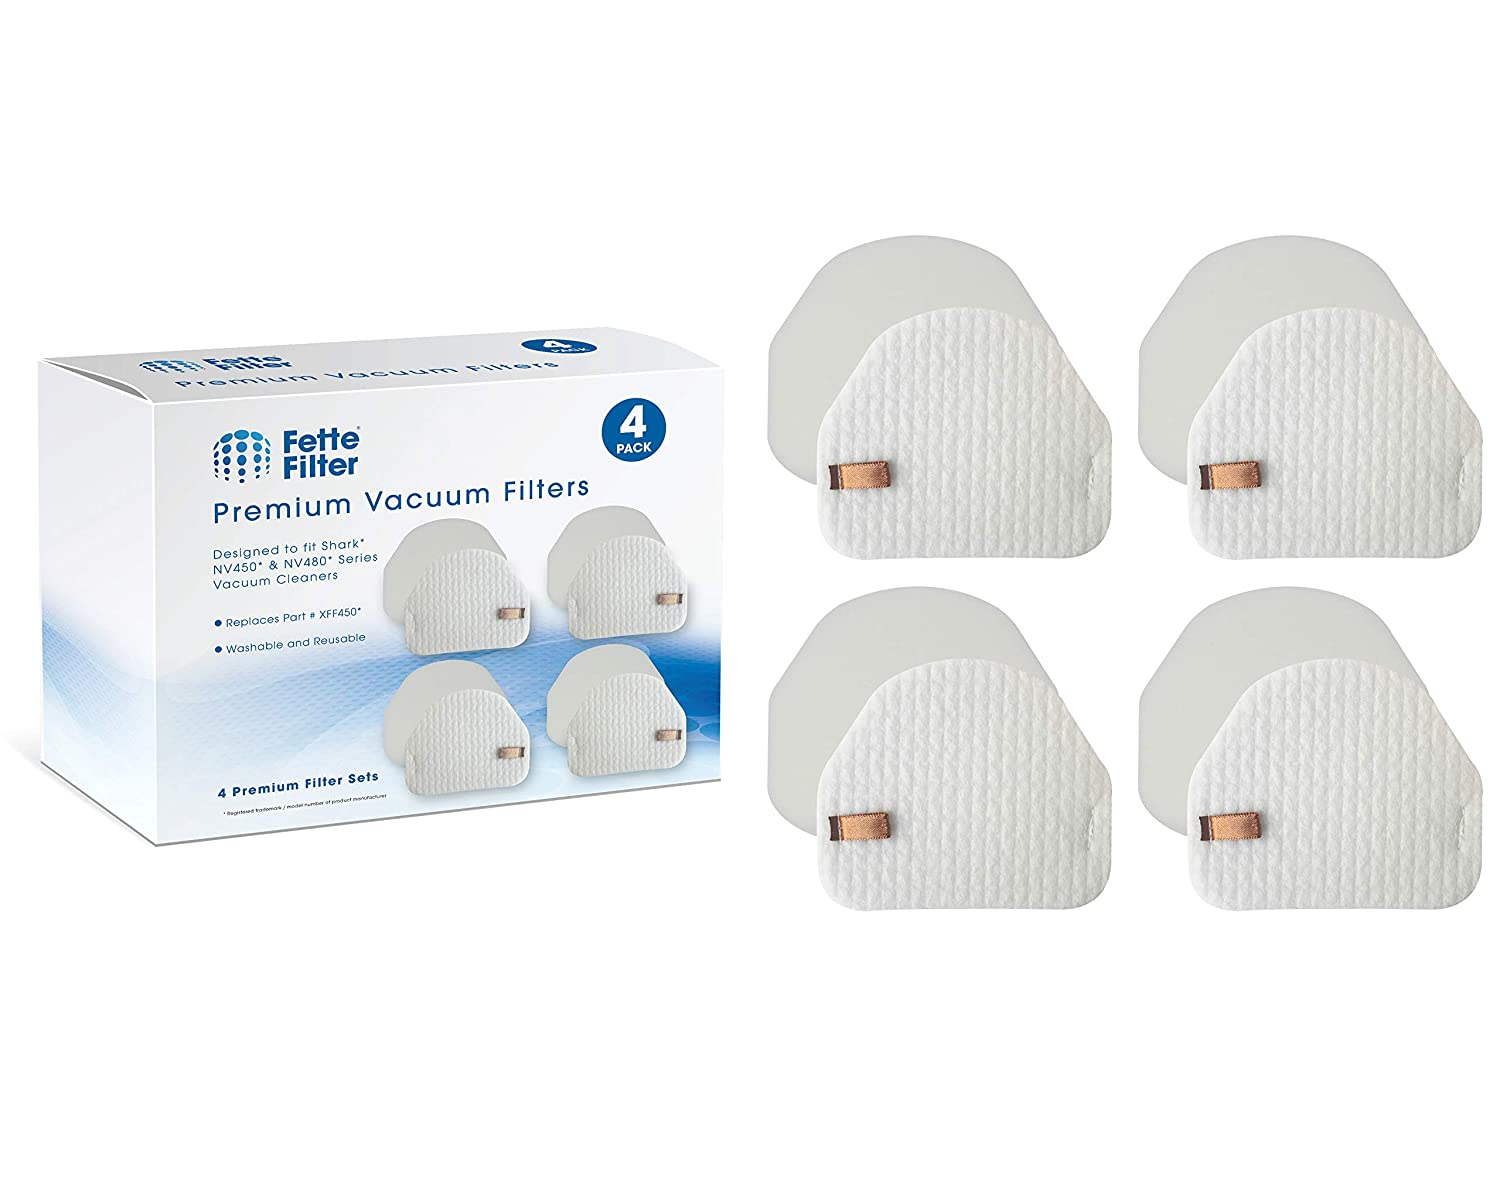 Fette Filter - 4-Pack of Vacuum Filters Compatible with Shark Professional Upright Models NV450, NV472, NV480 & NV200. Compare to Part # XFF450 - Foam & Felt Filters.